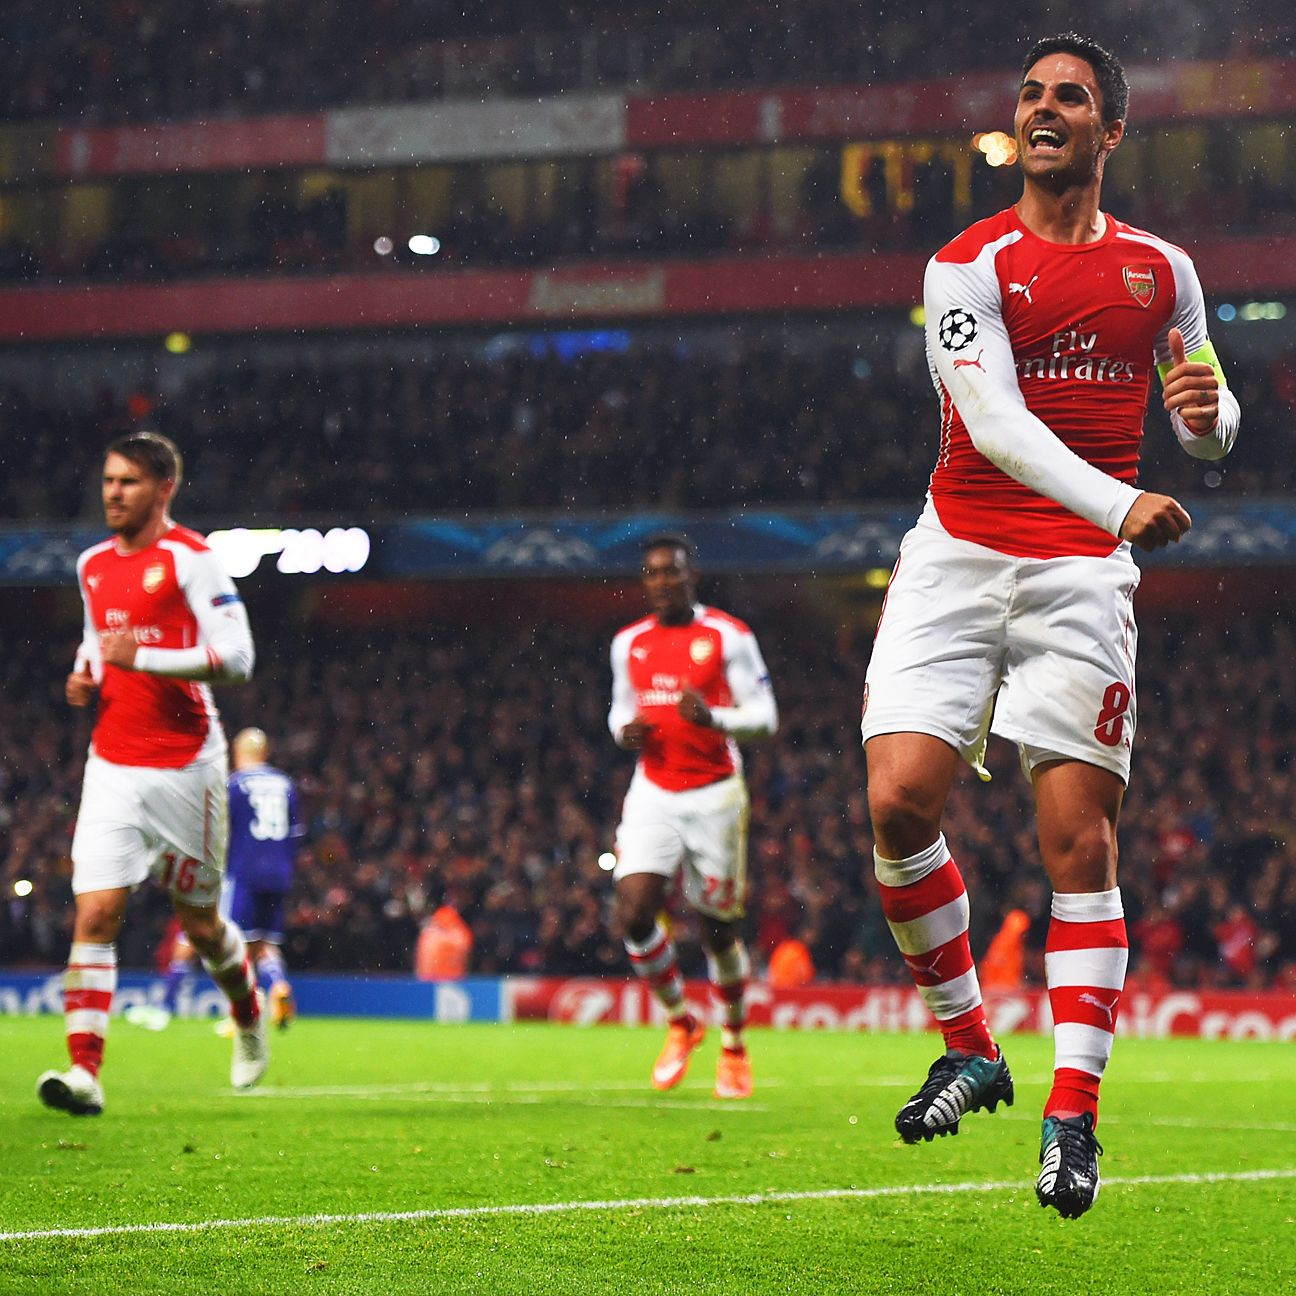 Arsenal have missed Mikel Arteta's leadership qualities, but exactly how much the midfielder will play in the season's final weeks is up for debate.